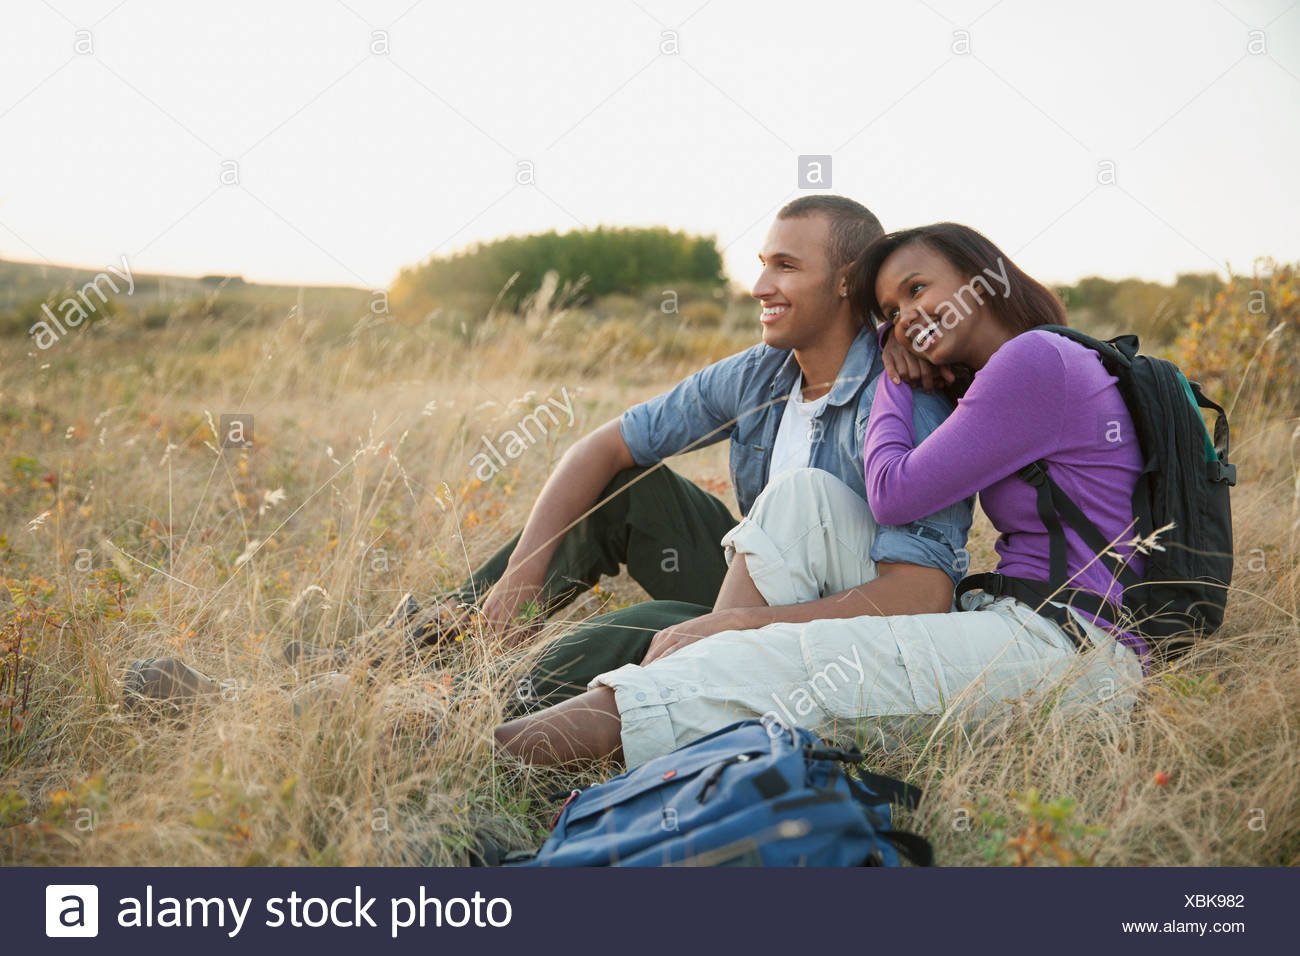 Couple relaxing after their outdoor hike. - Stock Image